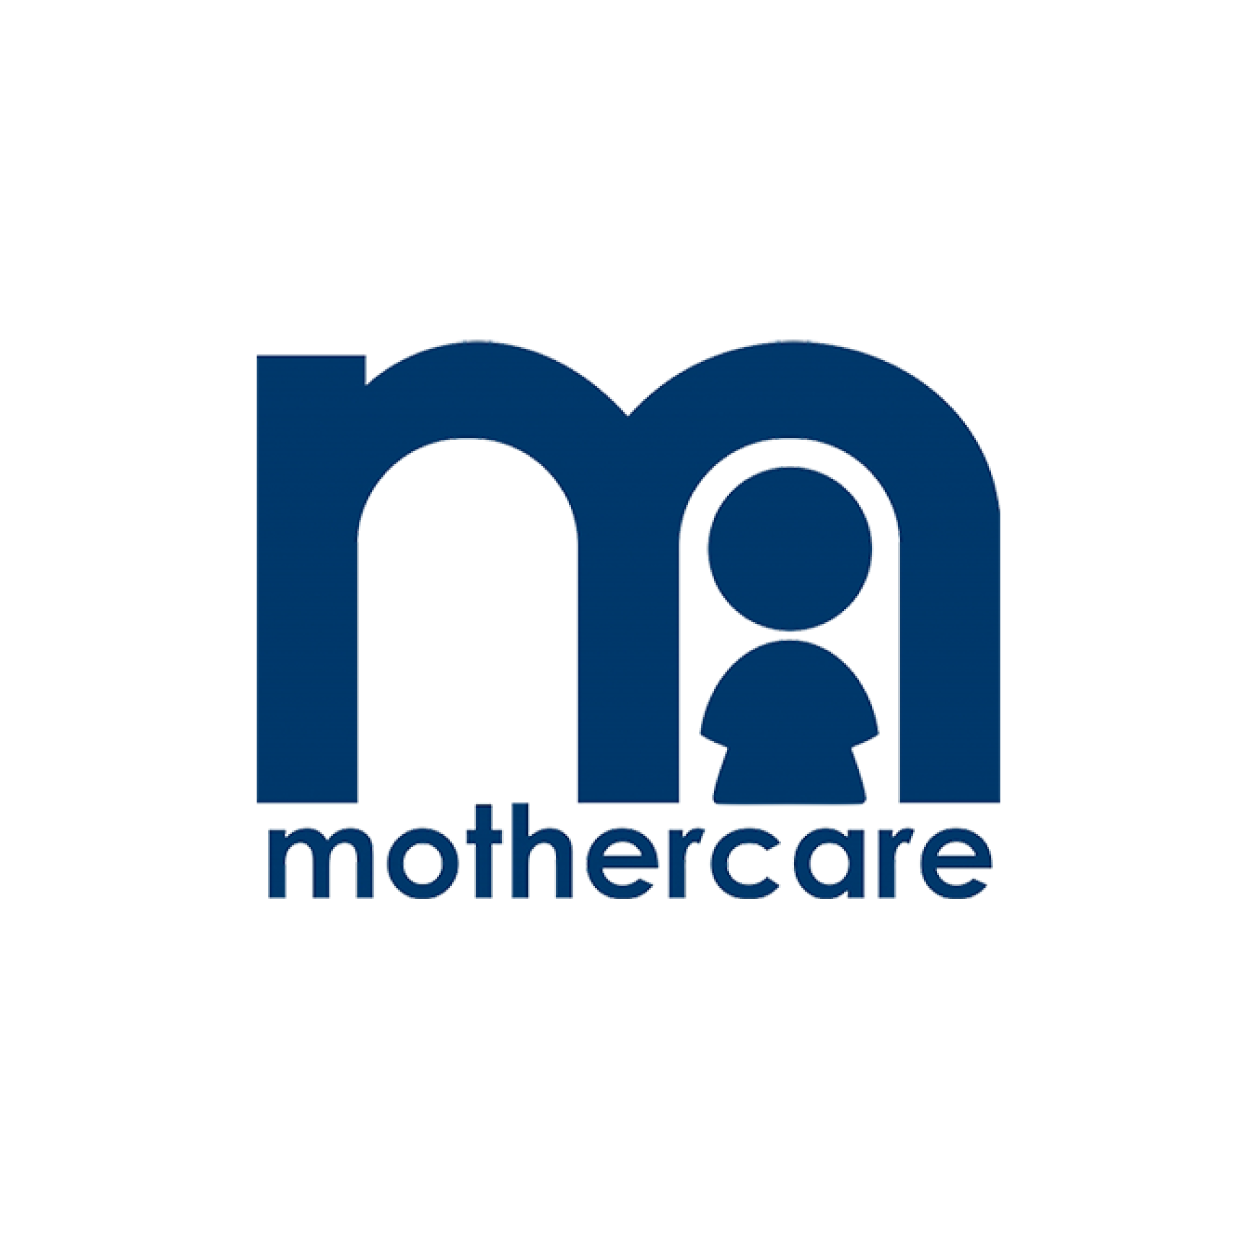 mothercare.png